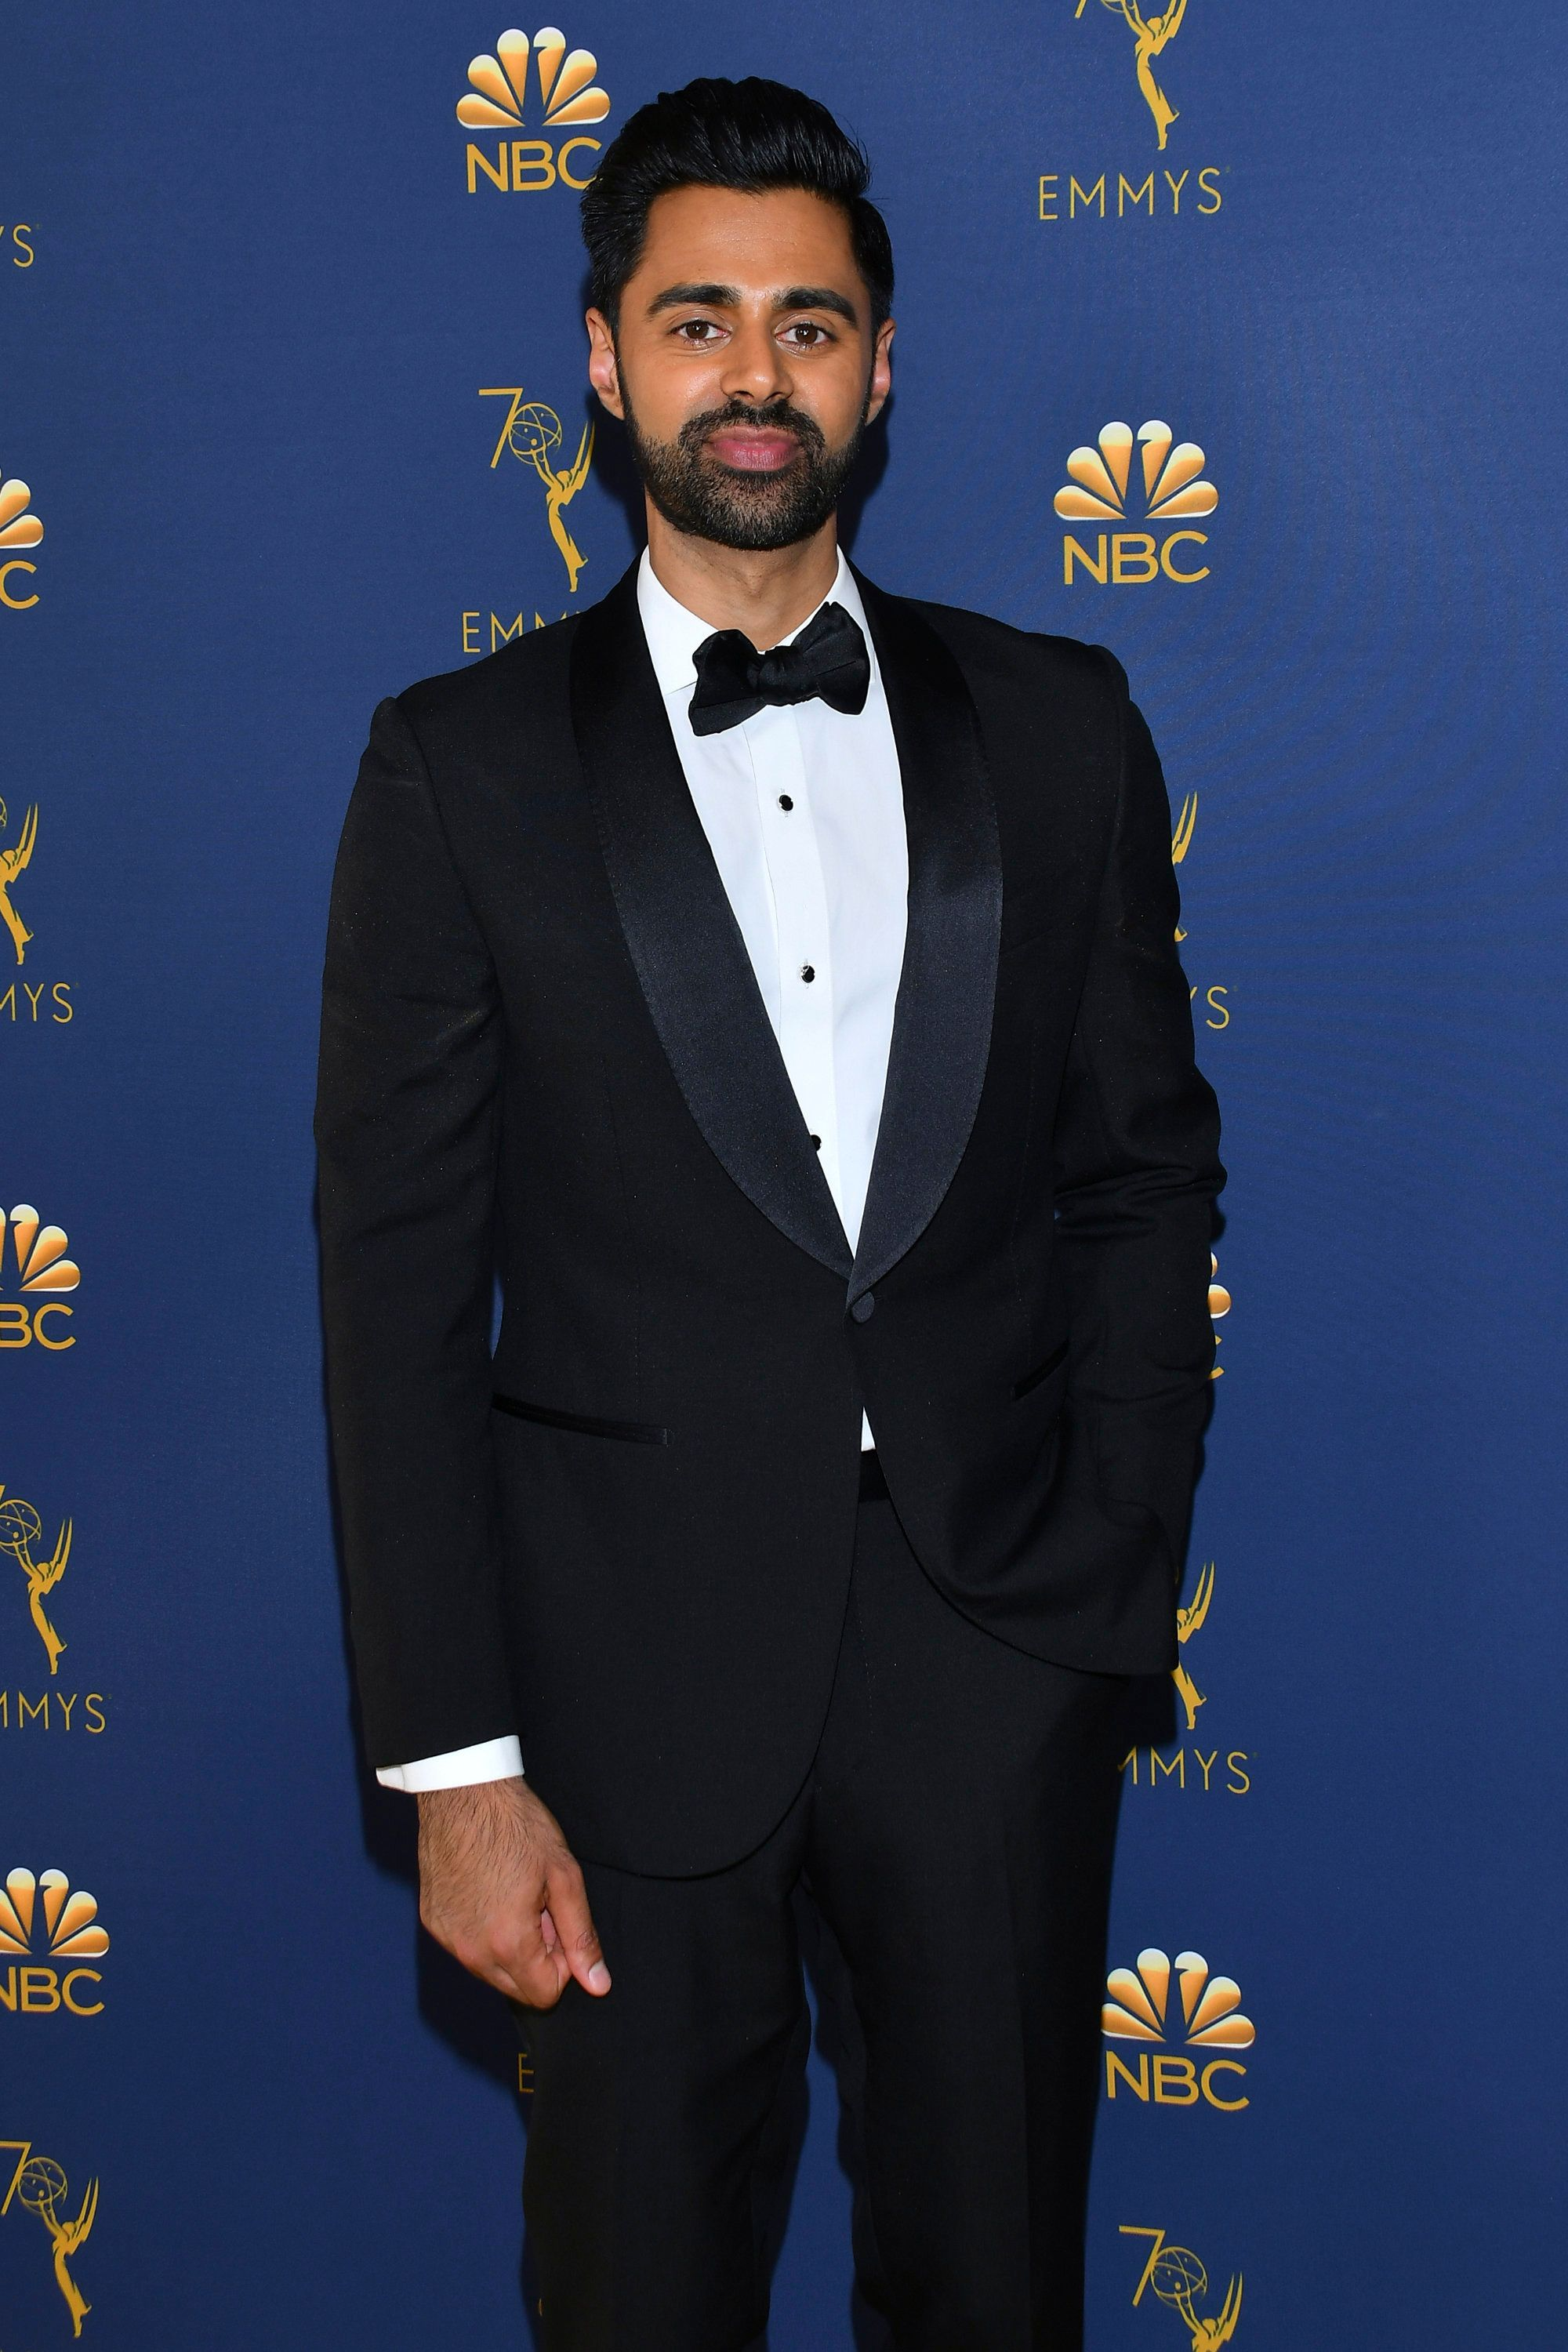 Hasan Minhaj arrives at the 70th Primetime Emmy Awards on Monday, Sept. 17, 2018, at the Microsoft Theater in Los Angeles. (Photo by Vince Bucci/Invision for the Television Academy/AP Images)